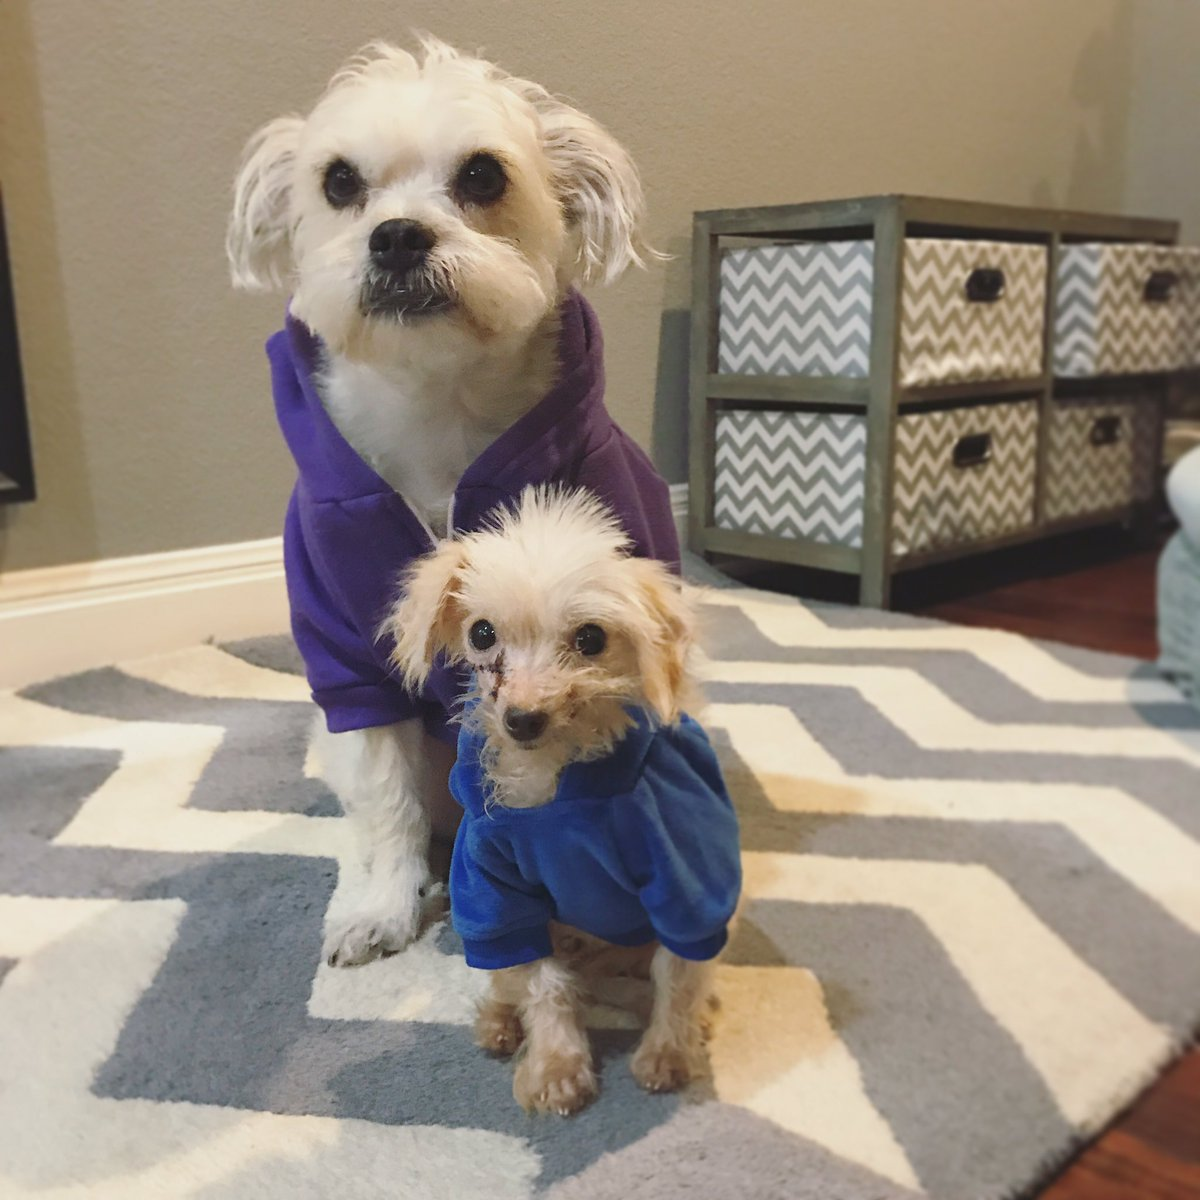 We&#39;ve got our hoodies on, and we&#39;re ready to tackle this potty walk! Lil&#39; Kim looks good in blue. #Austin @AustinDogRescue<br>http://pic.twitter.com/bC0iFX76LA